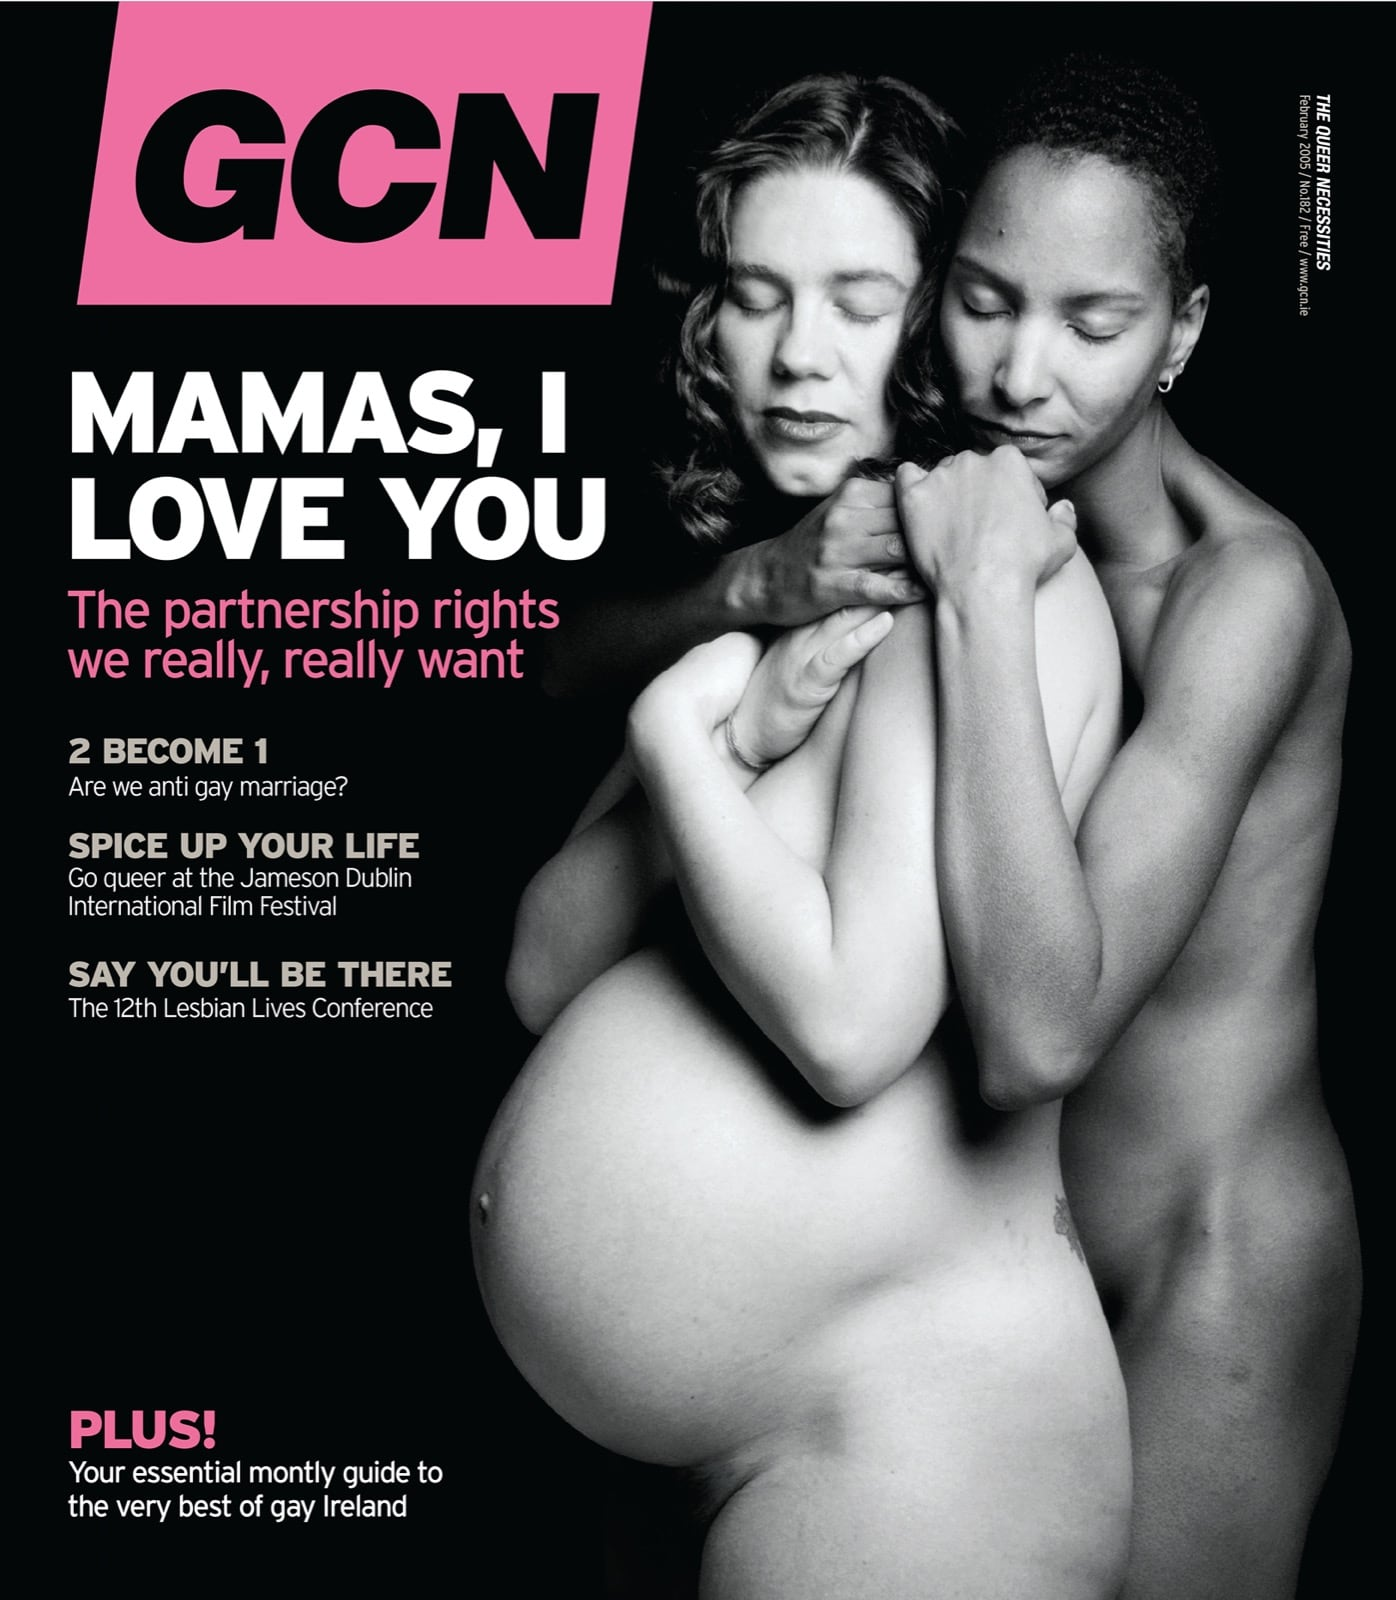 Some of GCN's covers from 2003 with a black and white photo of two women embracing while one of them is heavily pregnant.